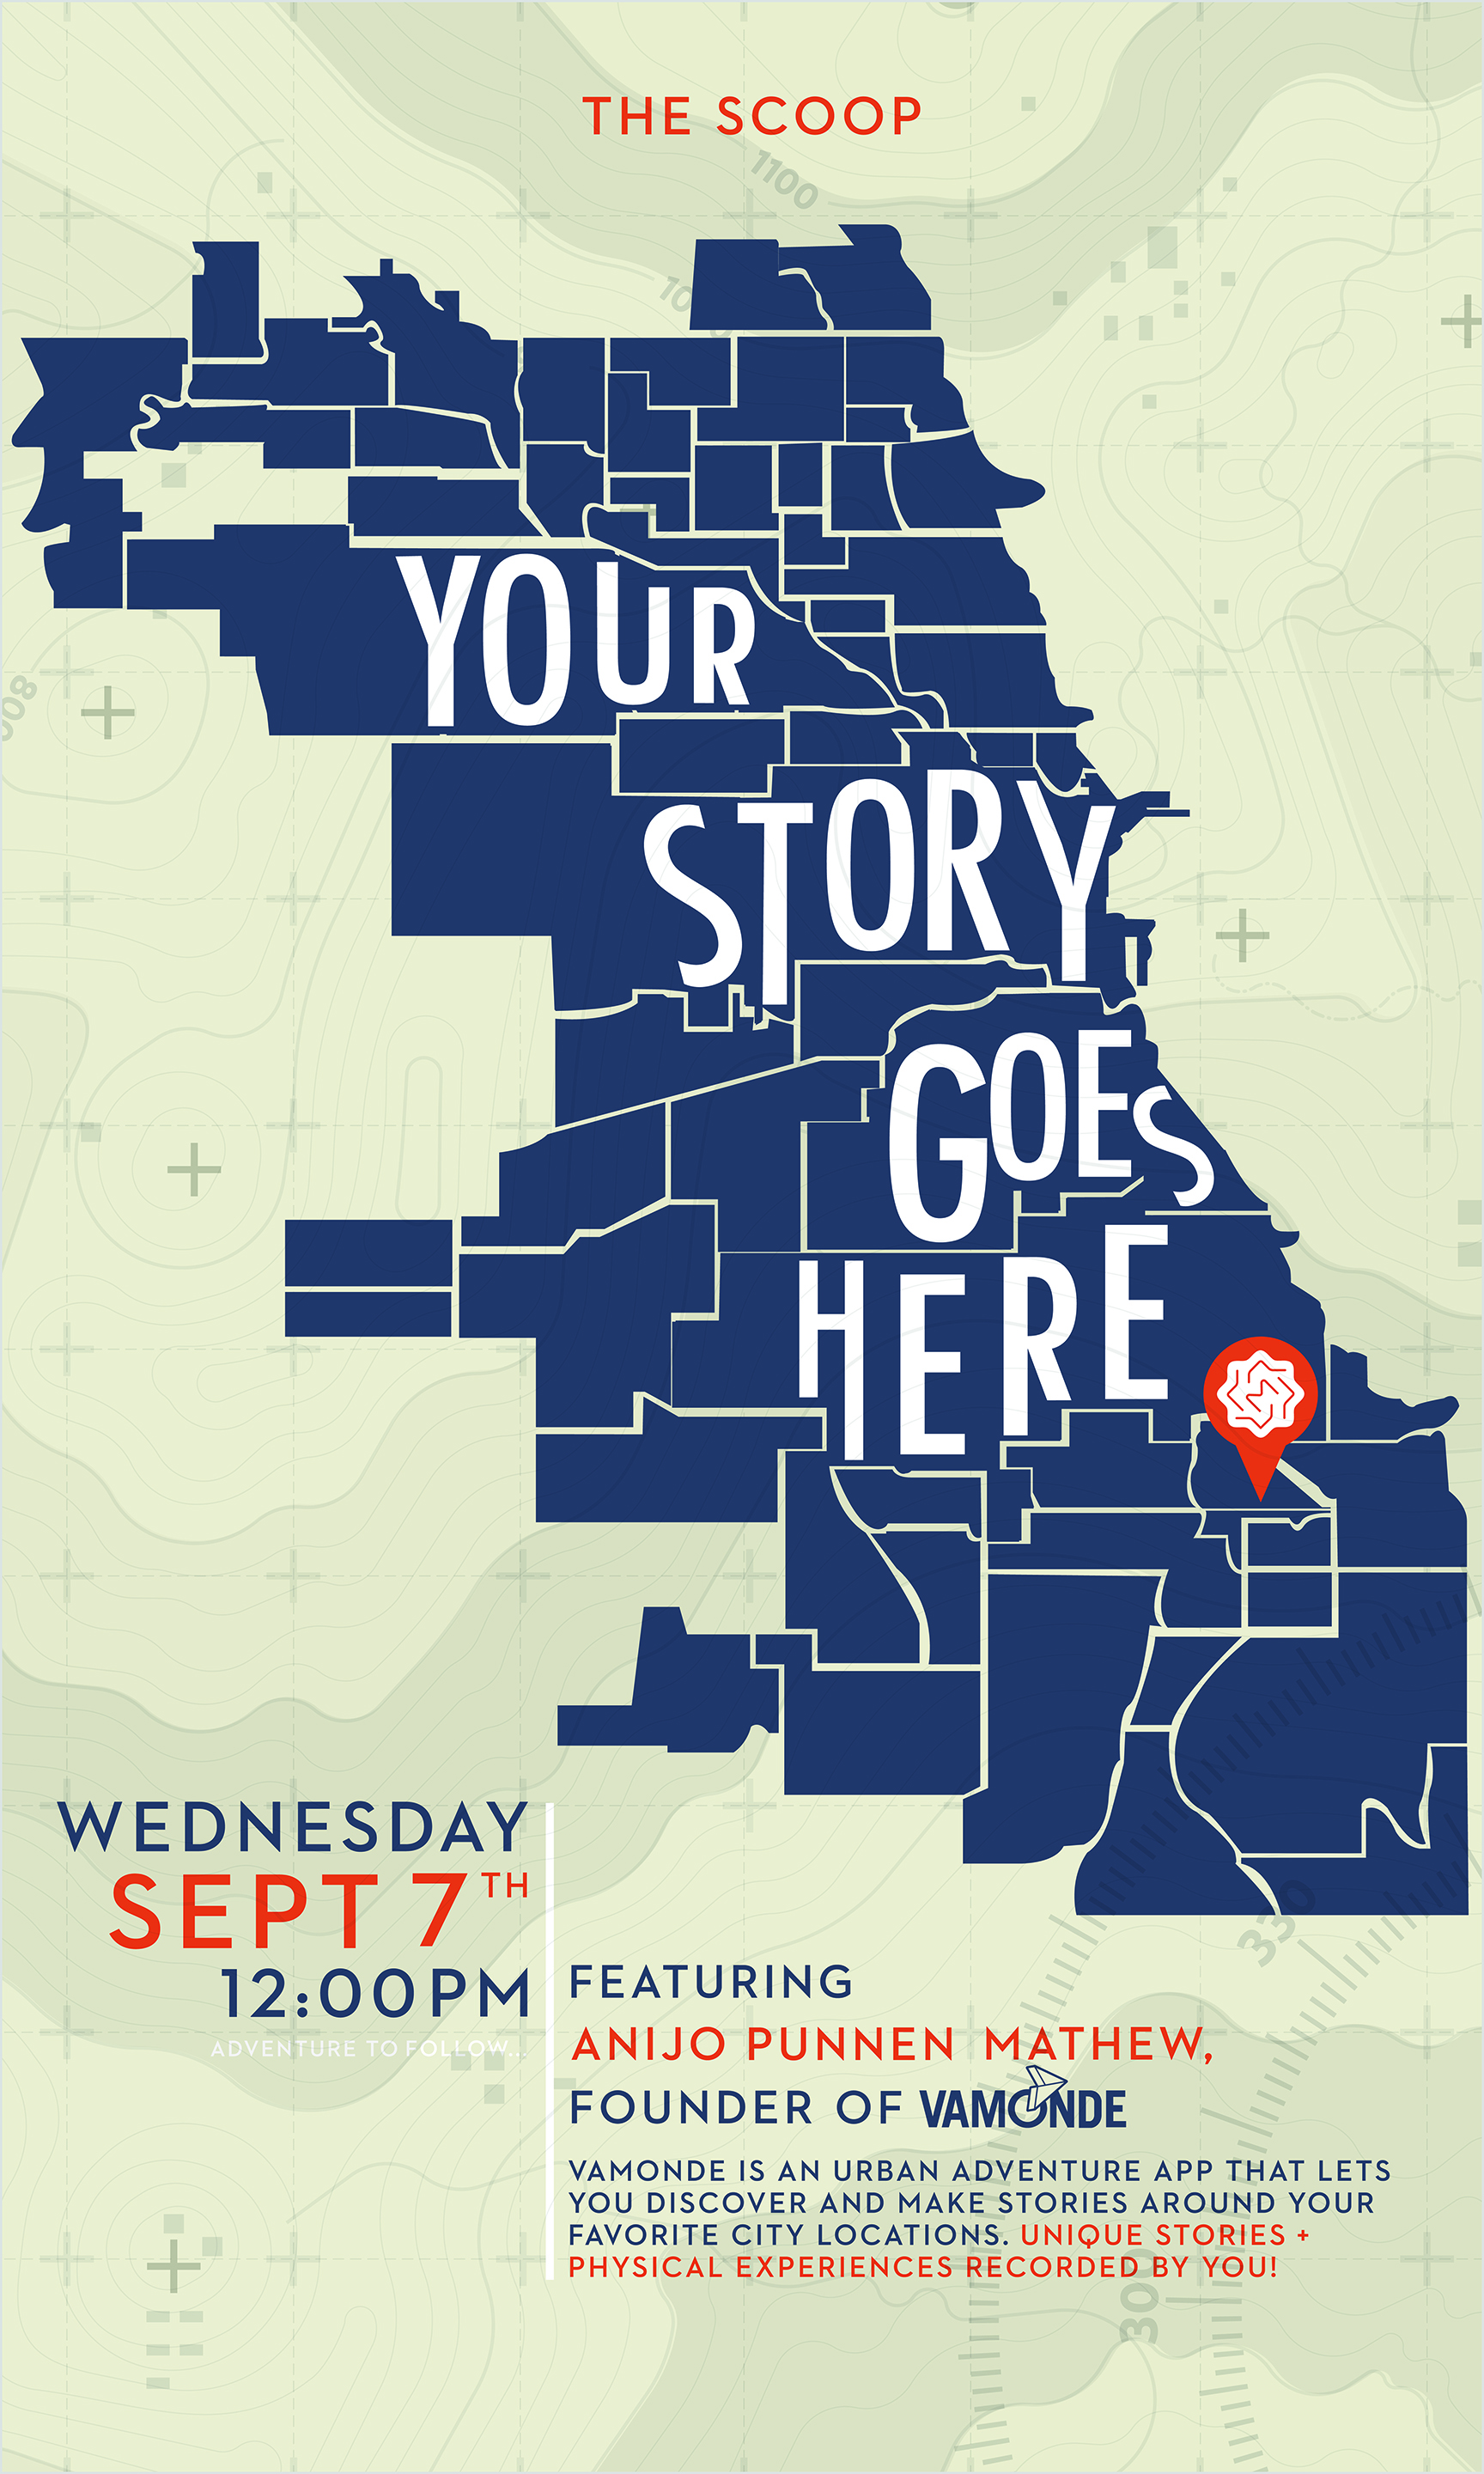 Your Story Goes Here